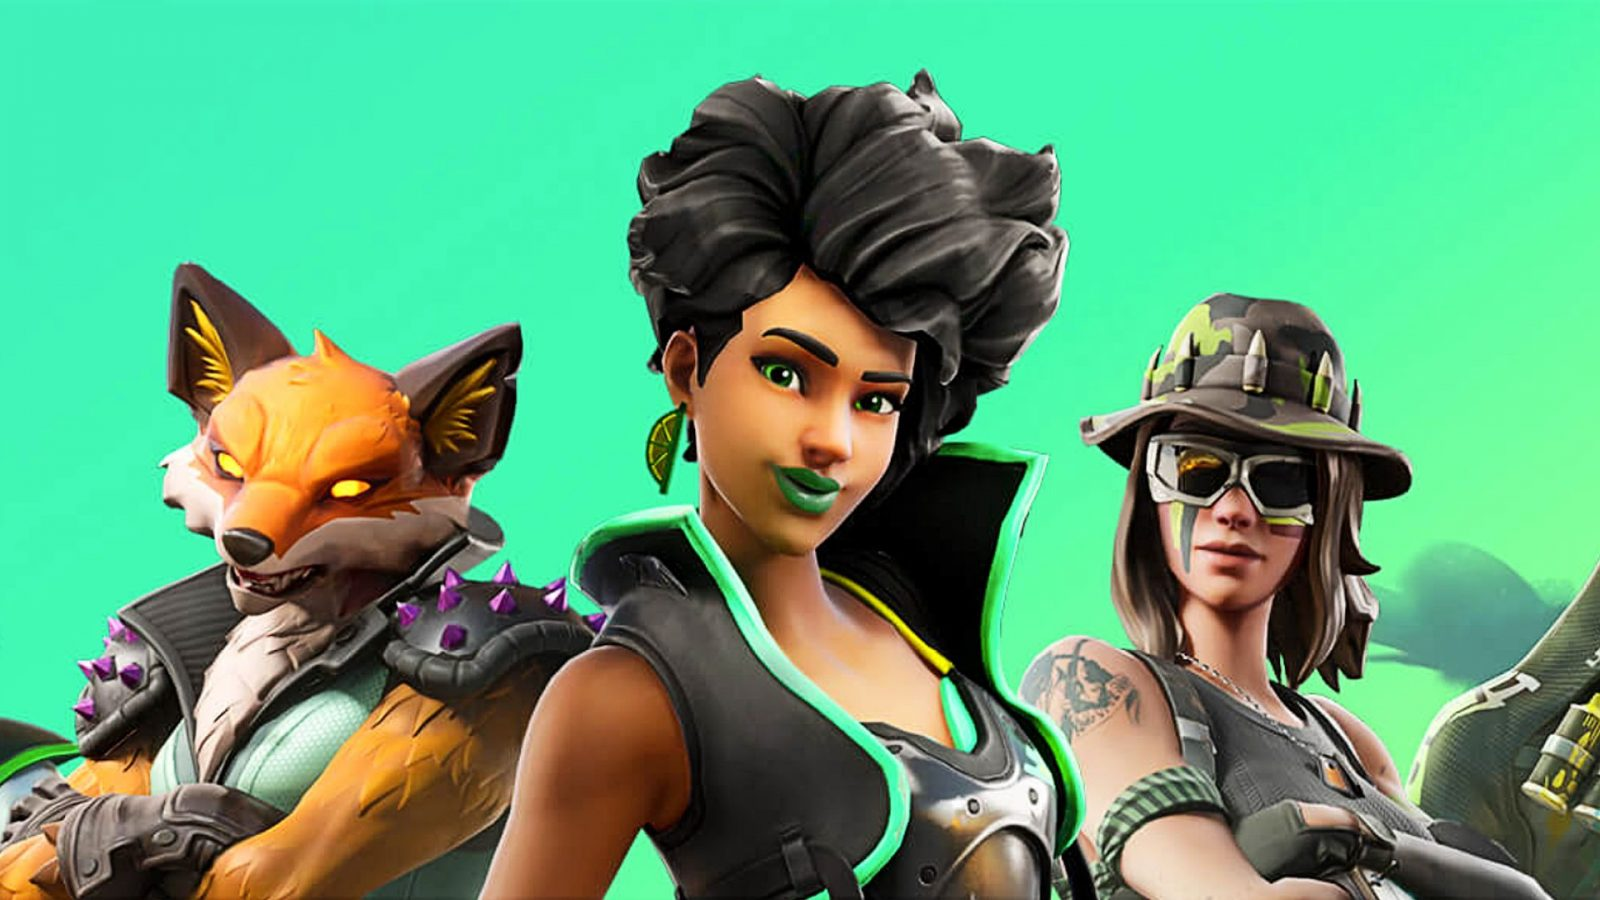 fortnite-chapter-2-season-2-release-date-extended-–-all-the-latest-details